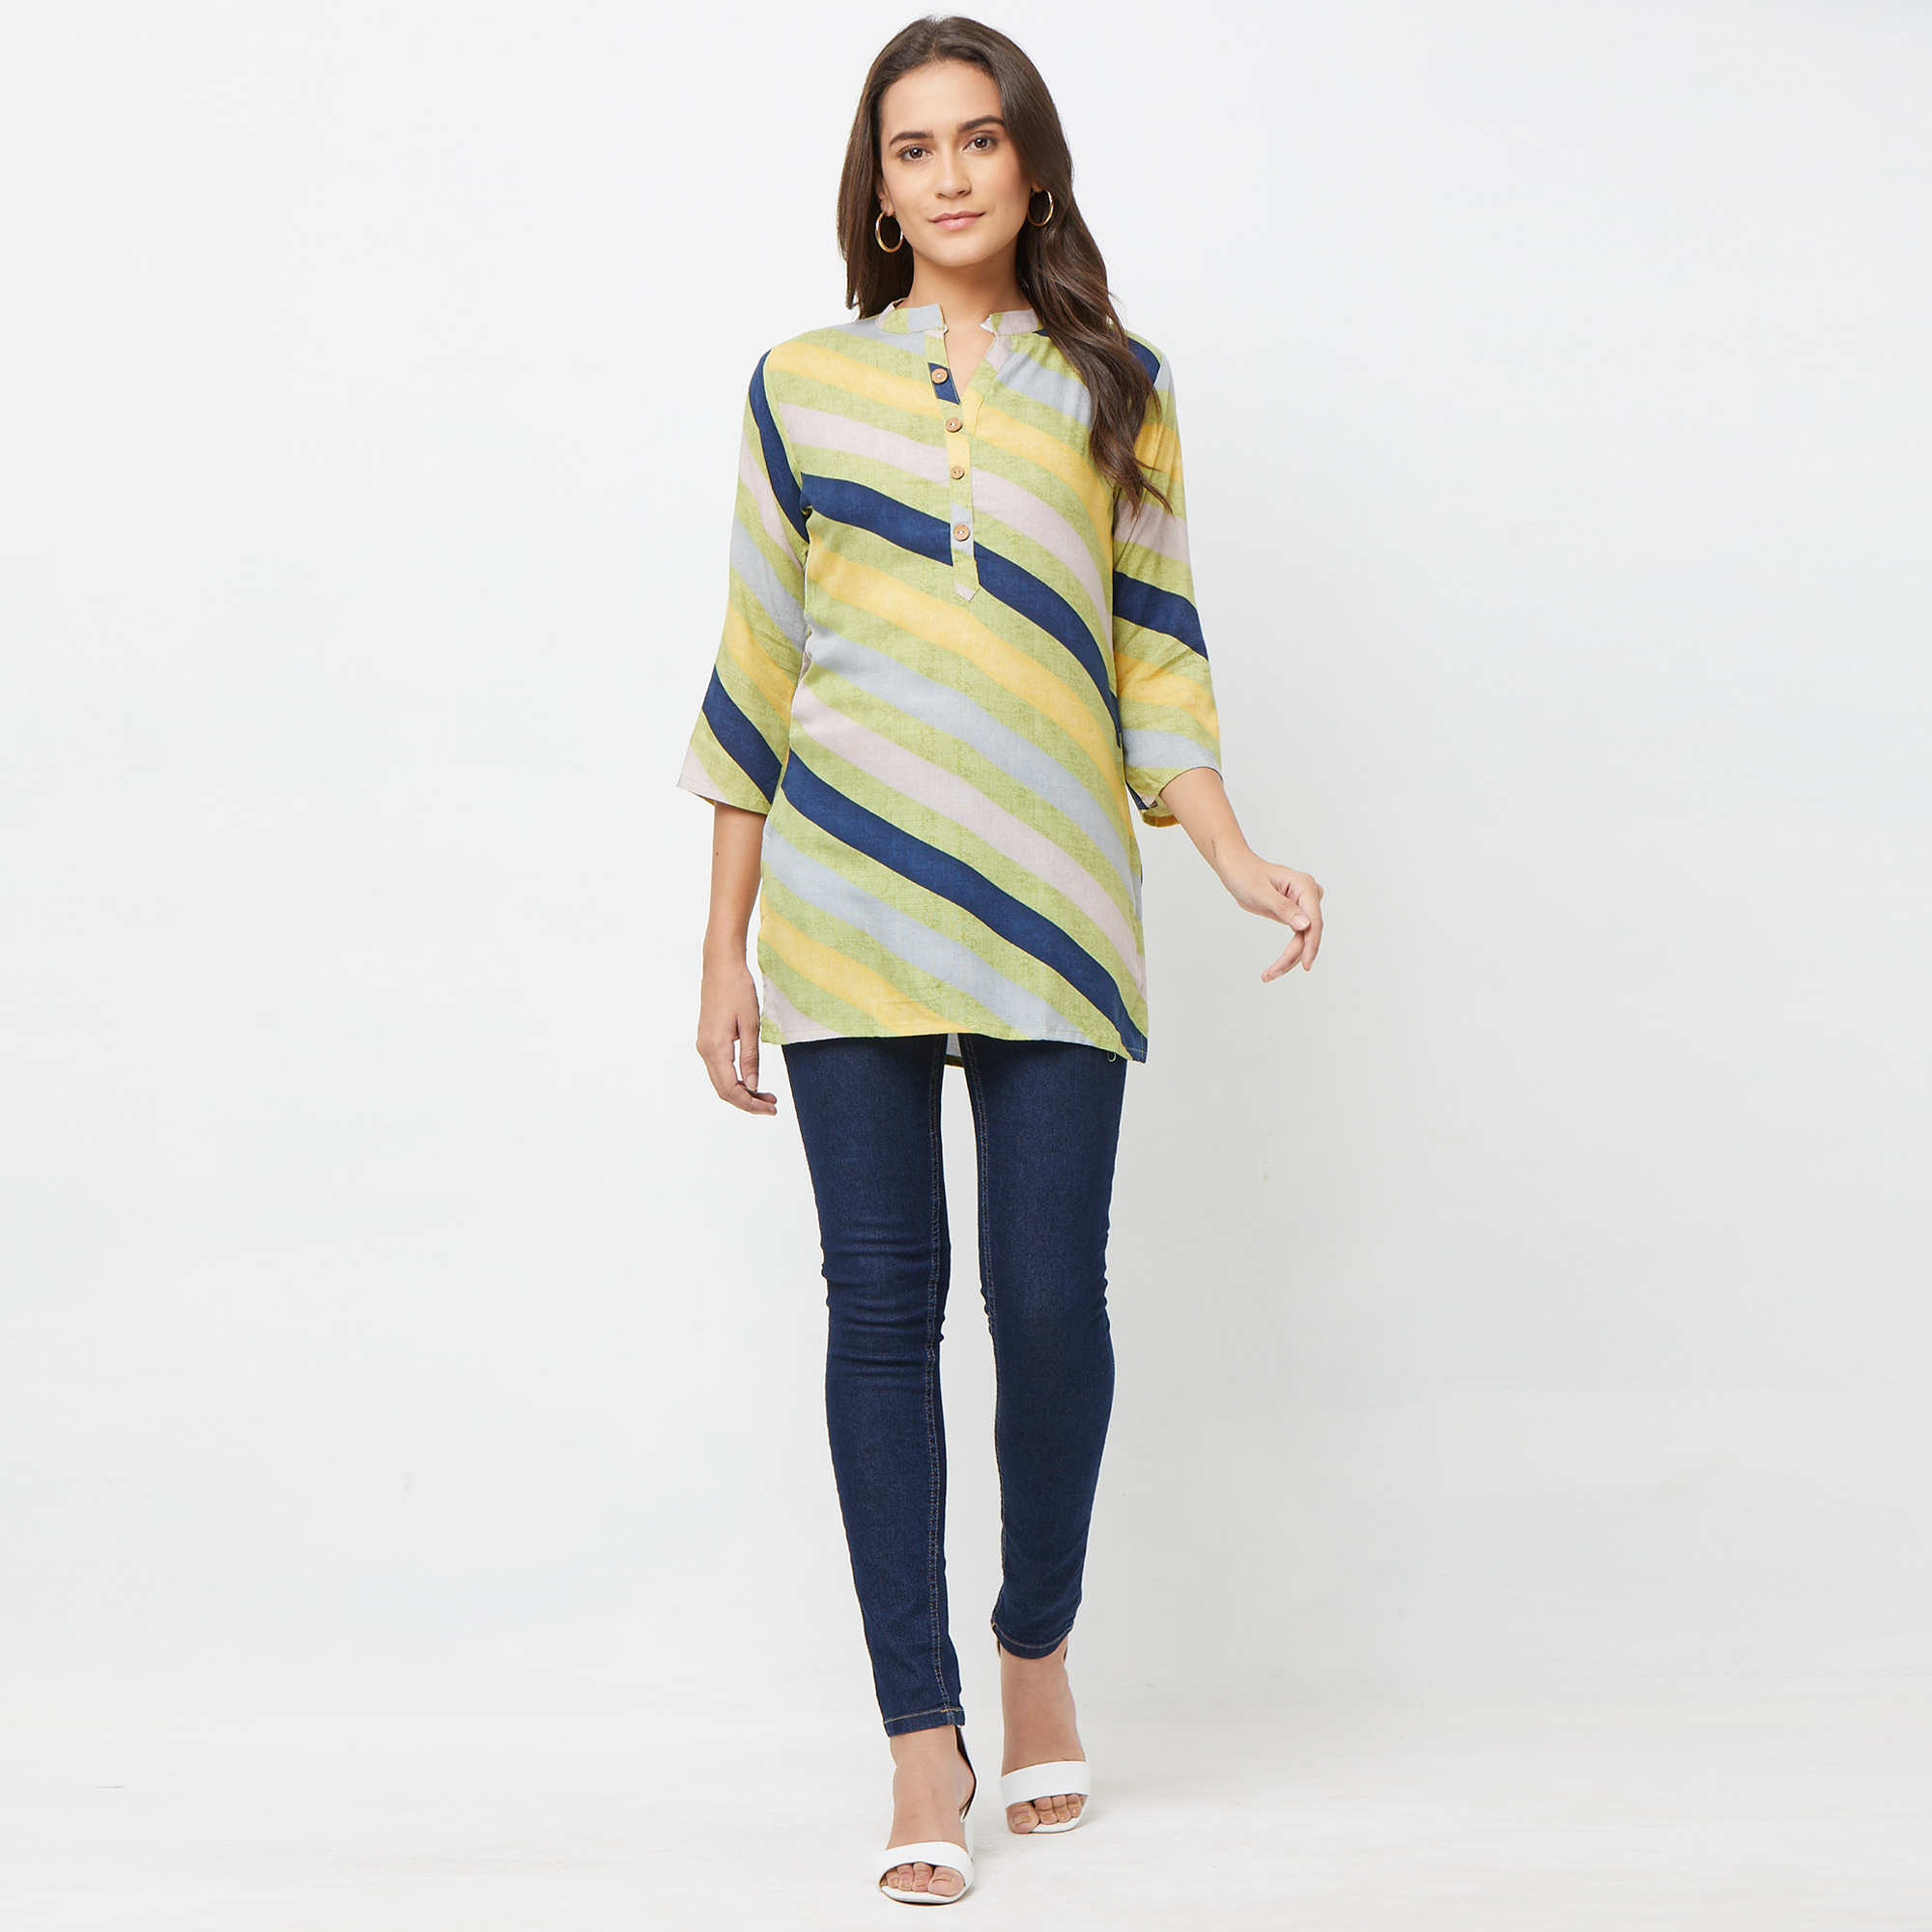 Desirable Green-Multi Colored Casual Printed Rayon top